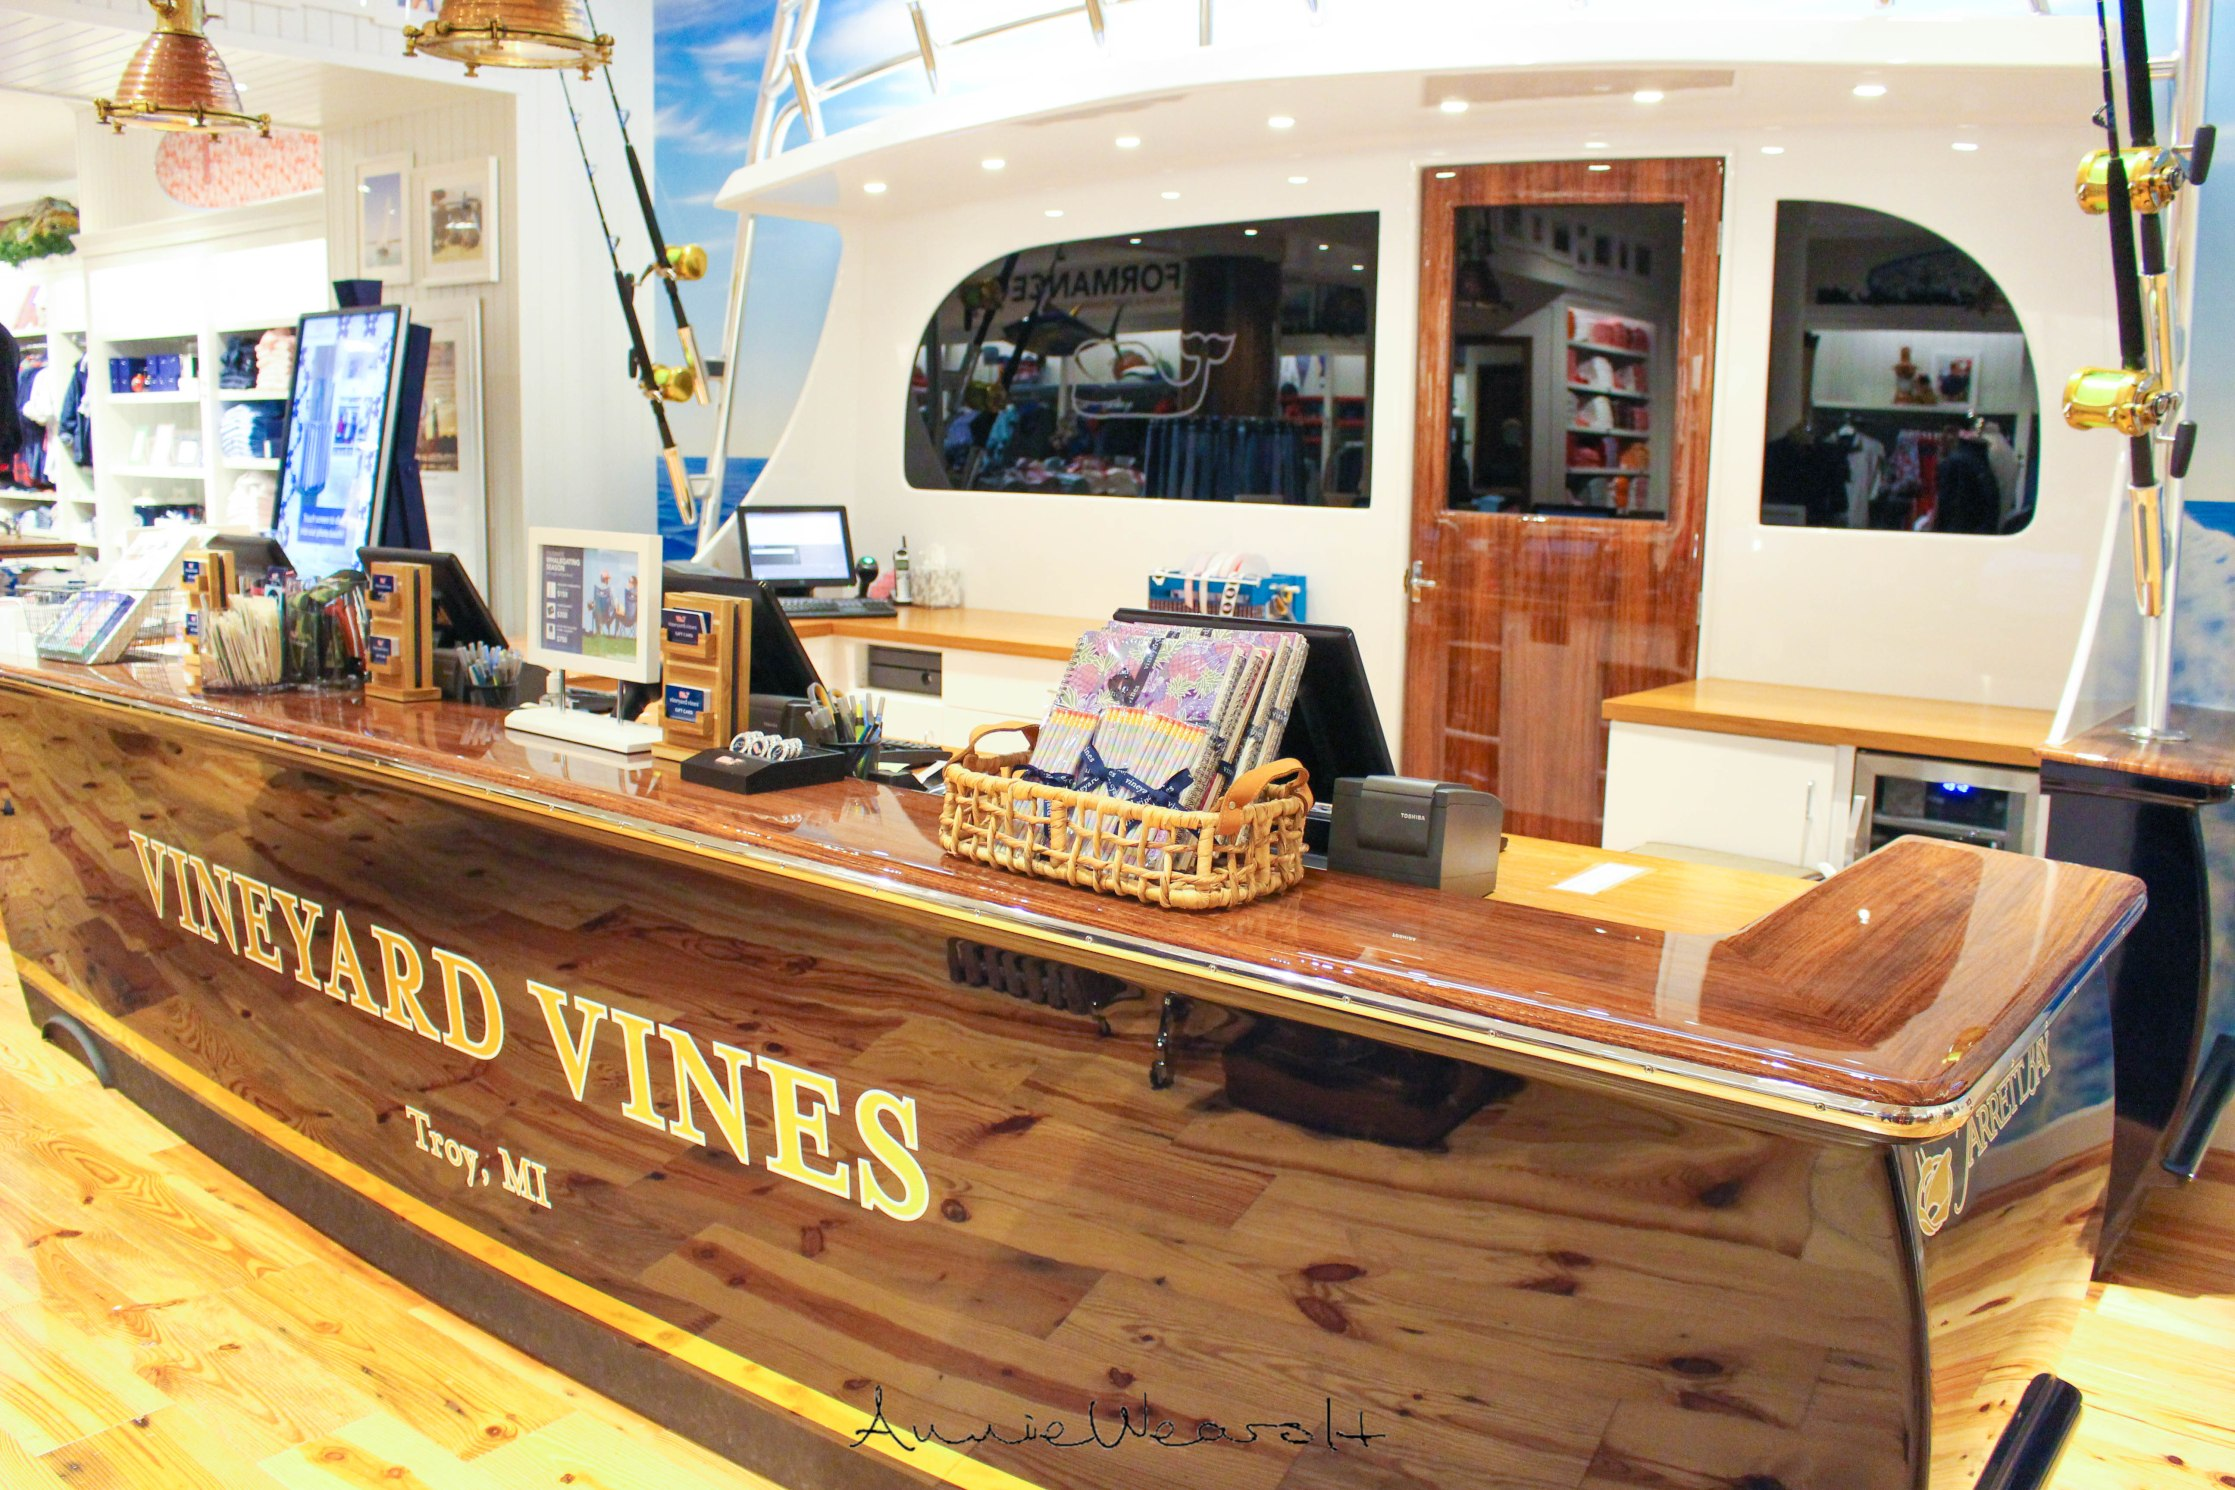 vineyard-vines-boat-2